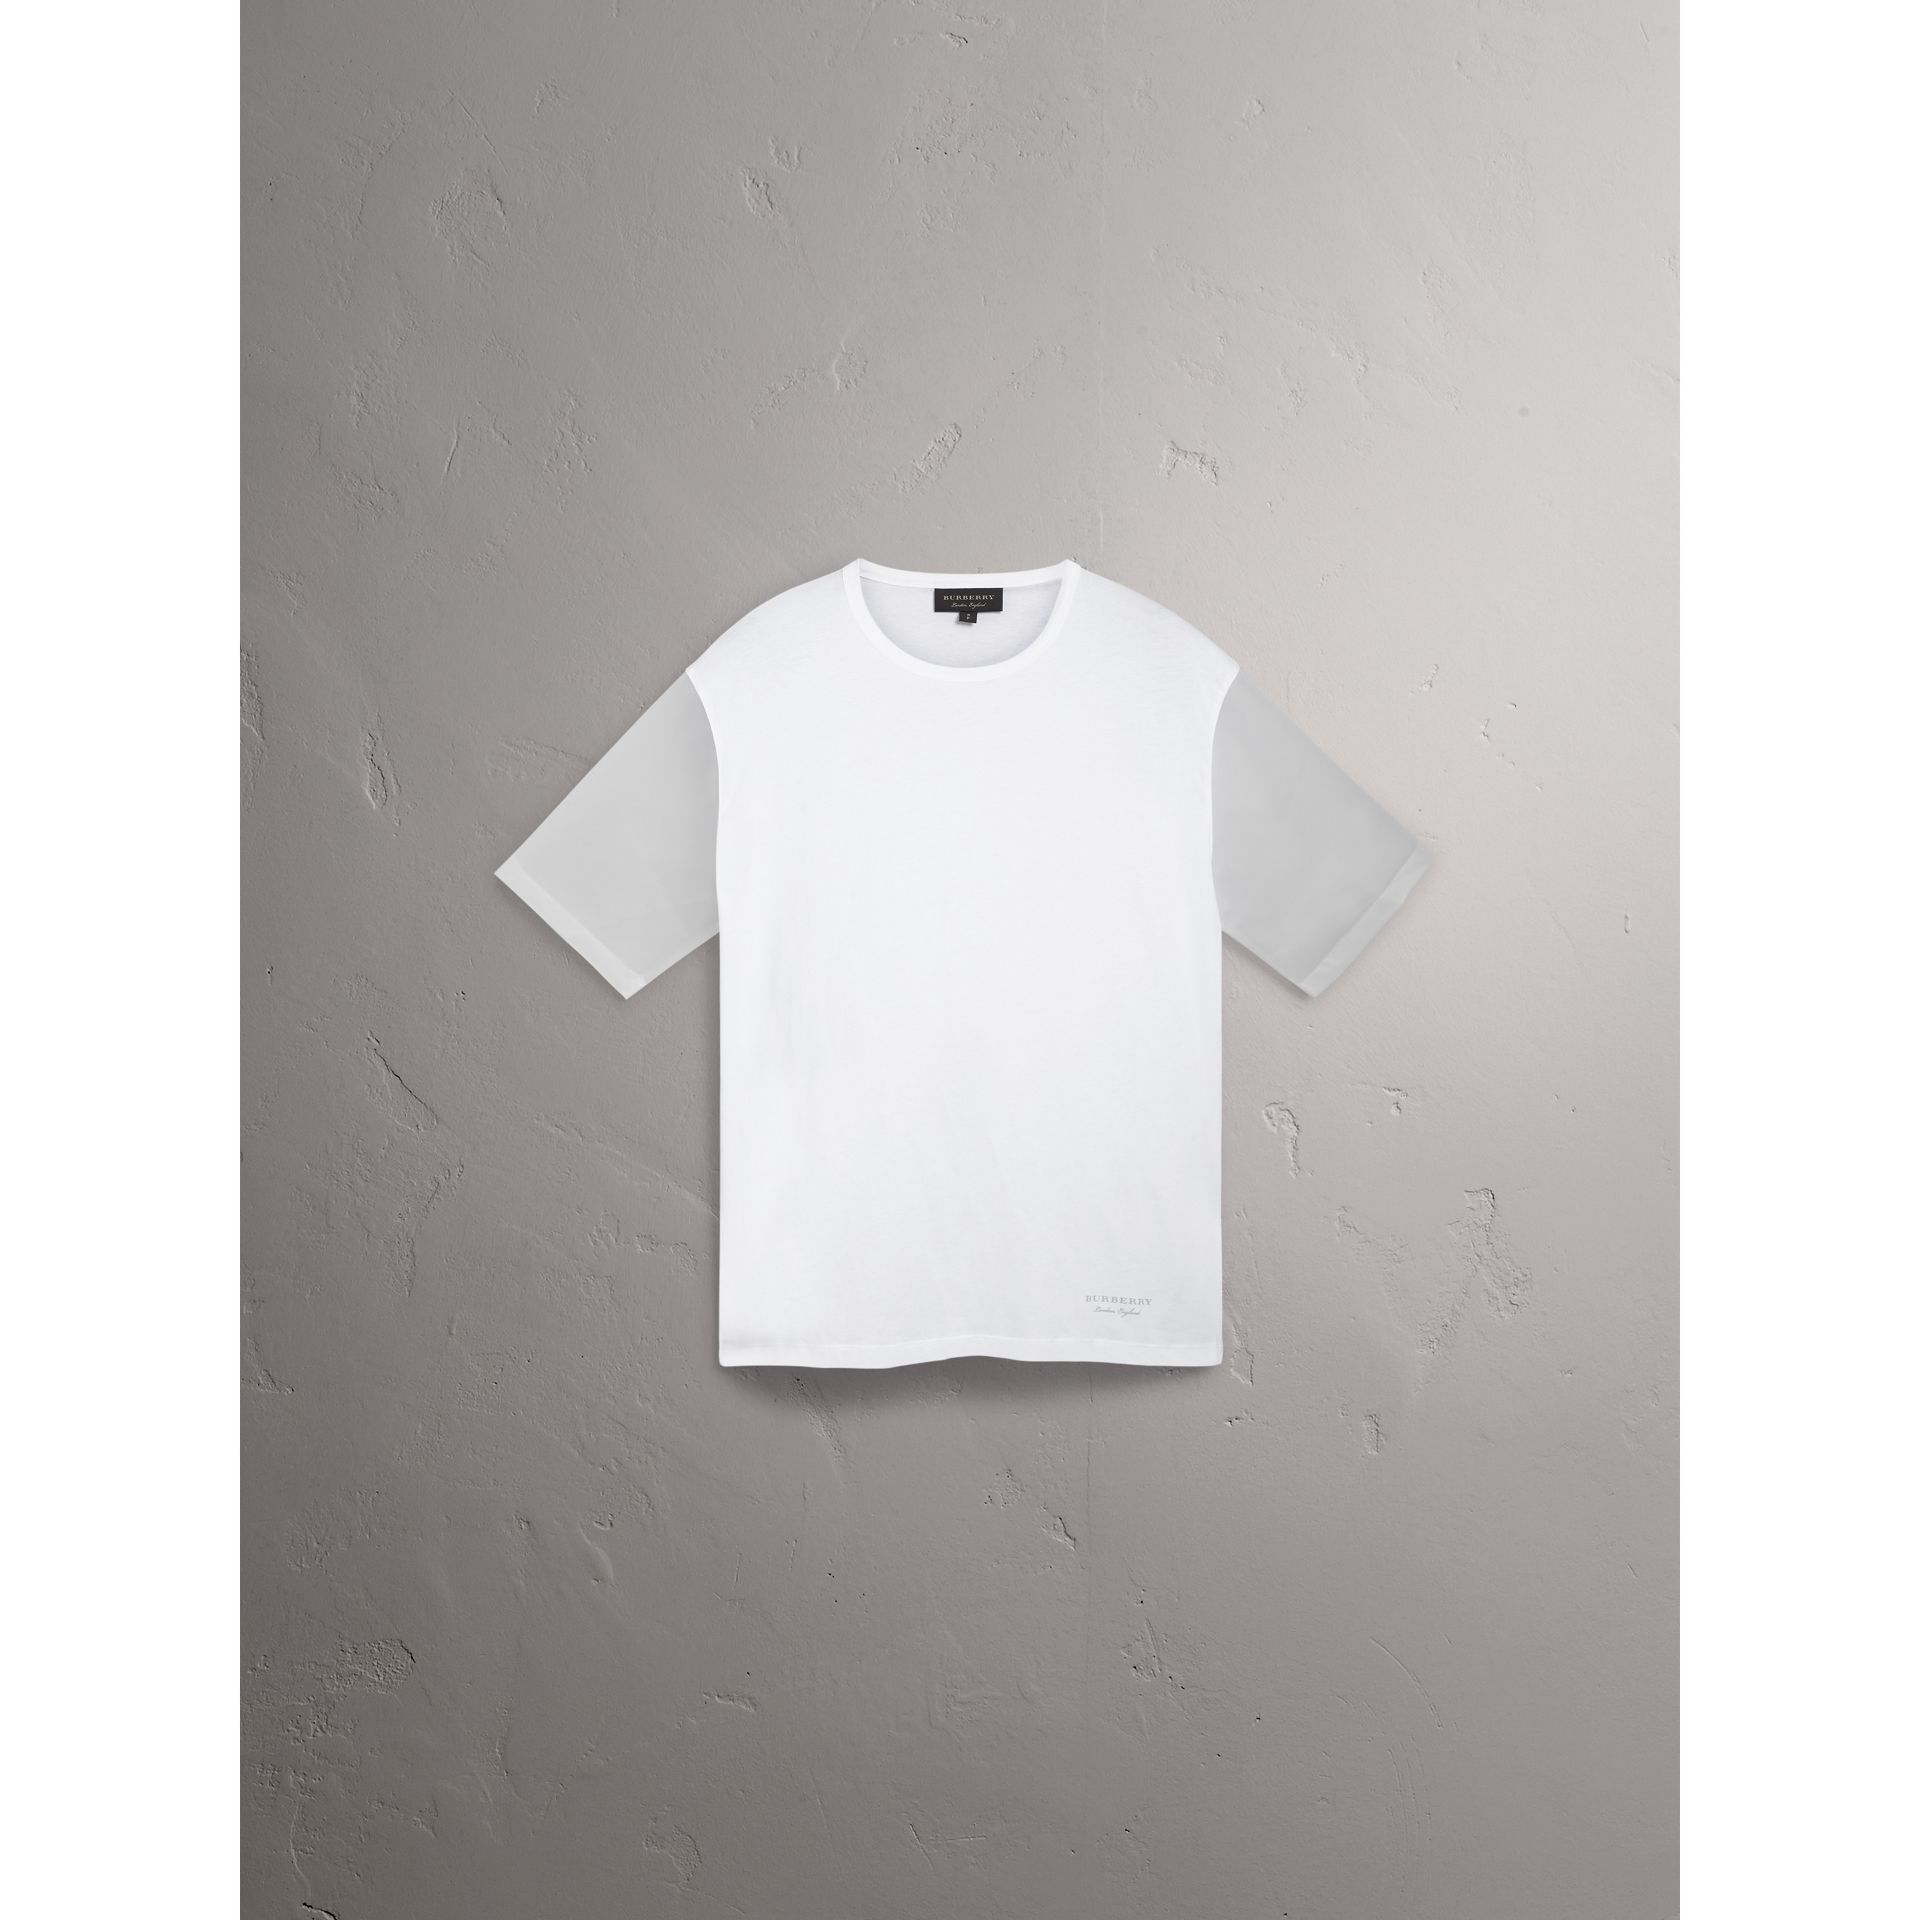 Cotton and Soft-touch Plastic T-shirt in White - Men | Burberry - gallery image 4